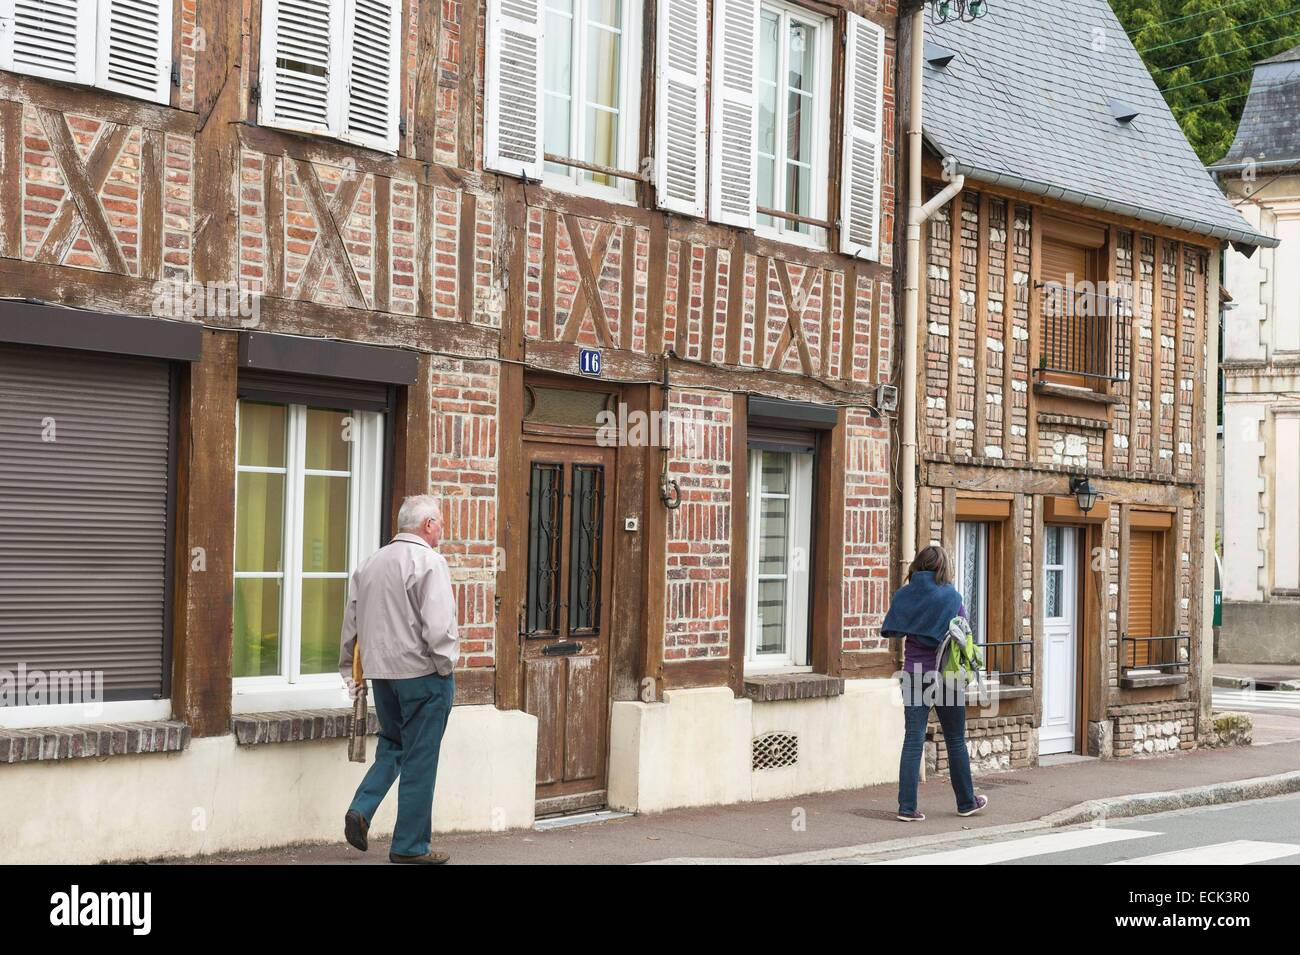 France, Seine Maritime, Neufchatel en Bray, typical timbered houses - Stock Image